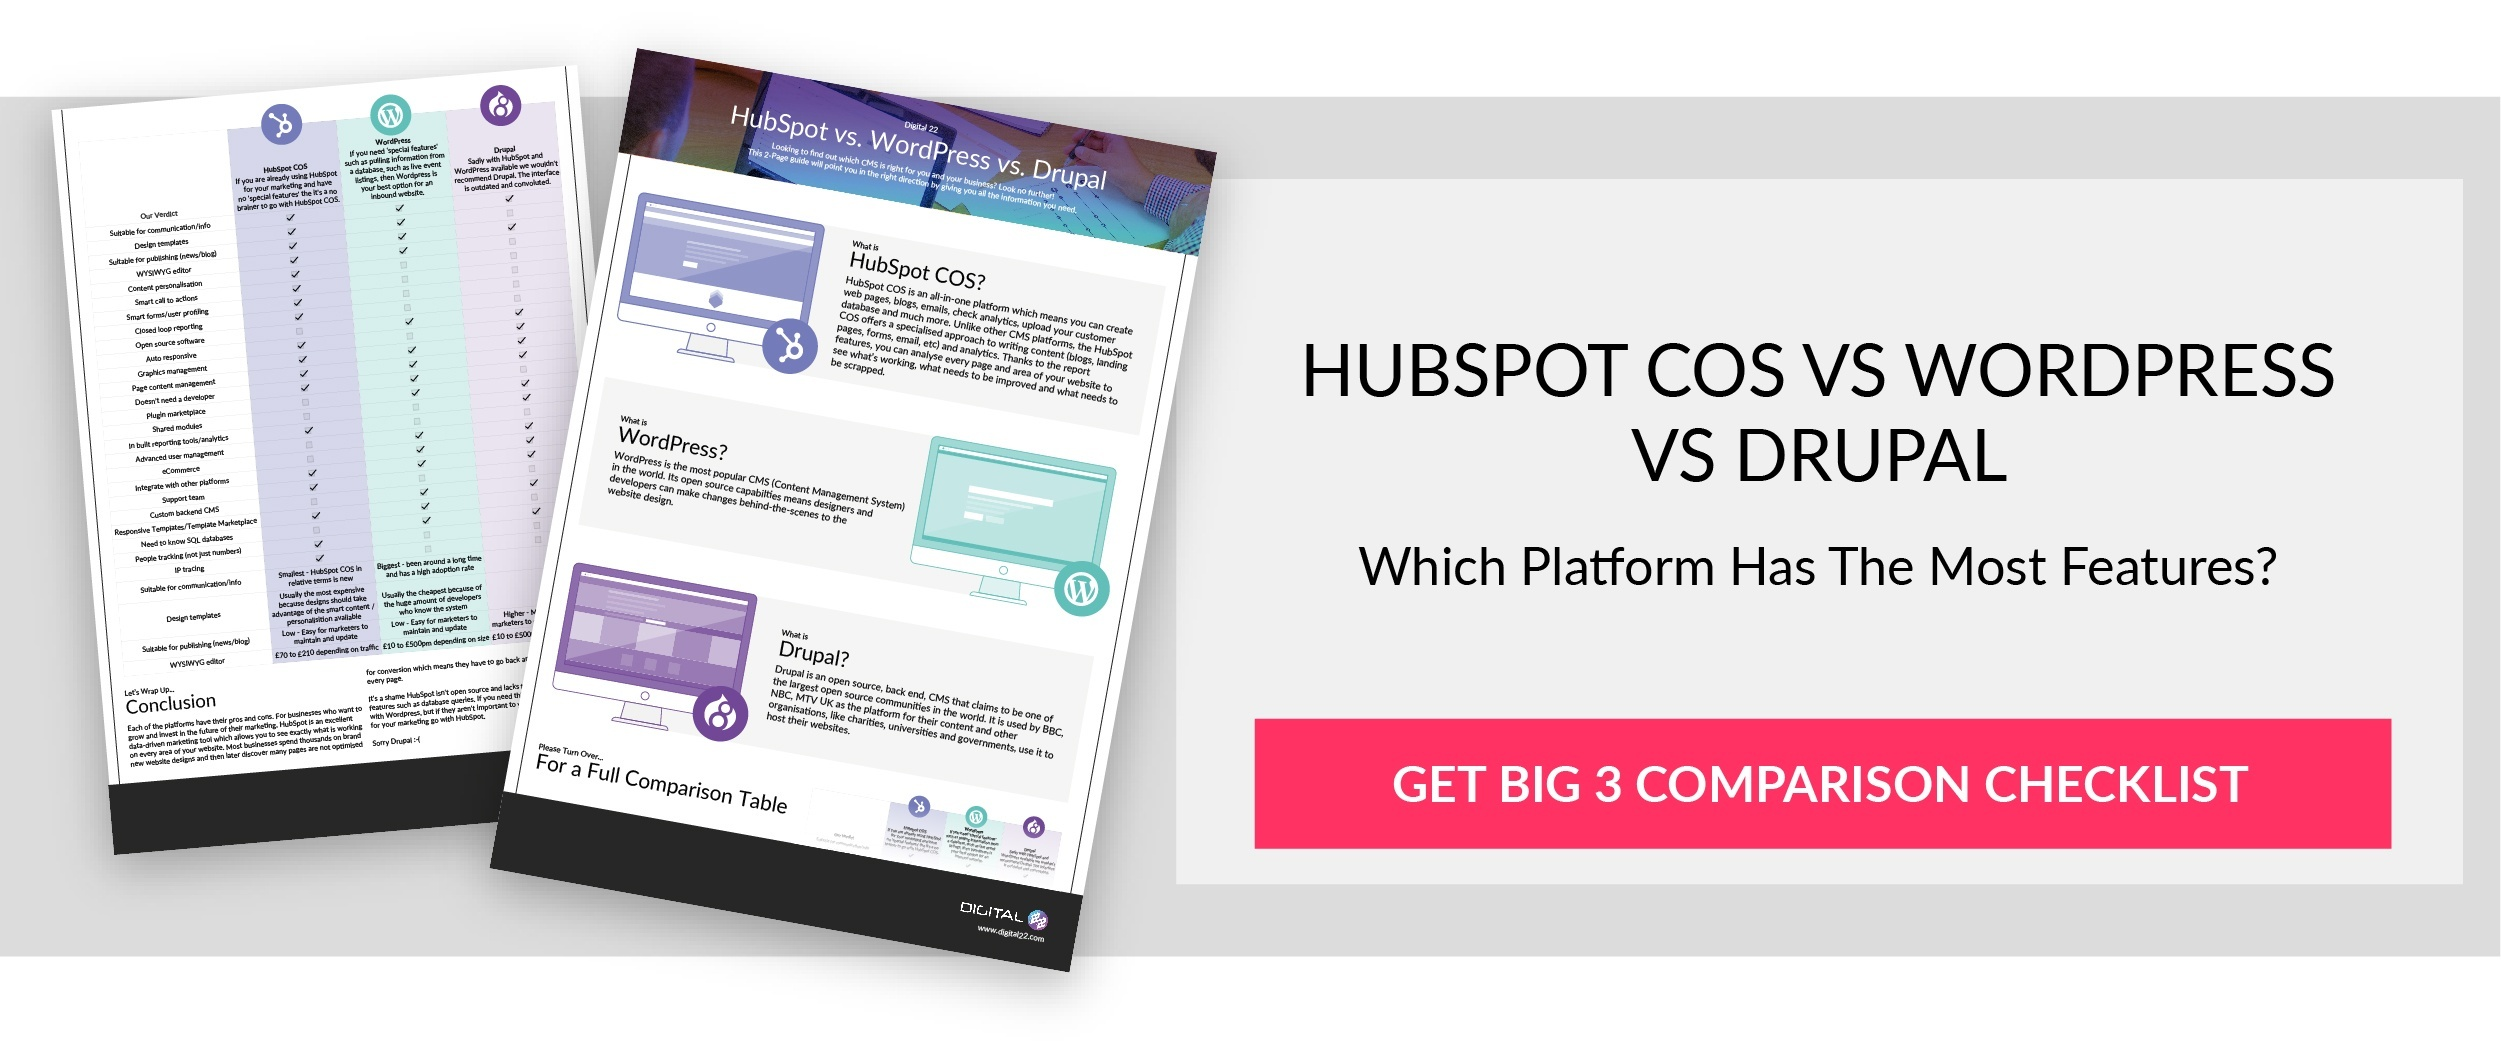 HubSpot vs WordPress vs Drupal